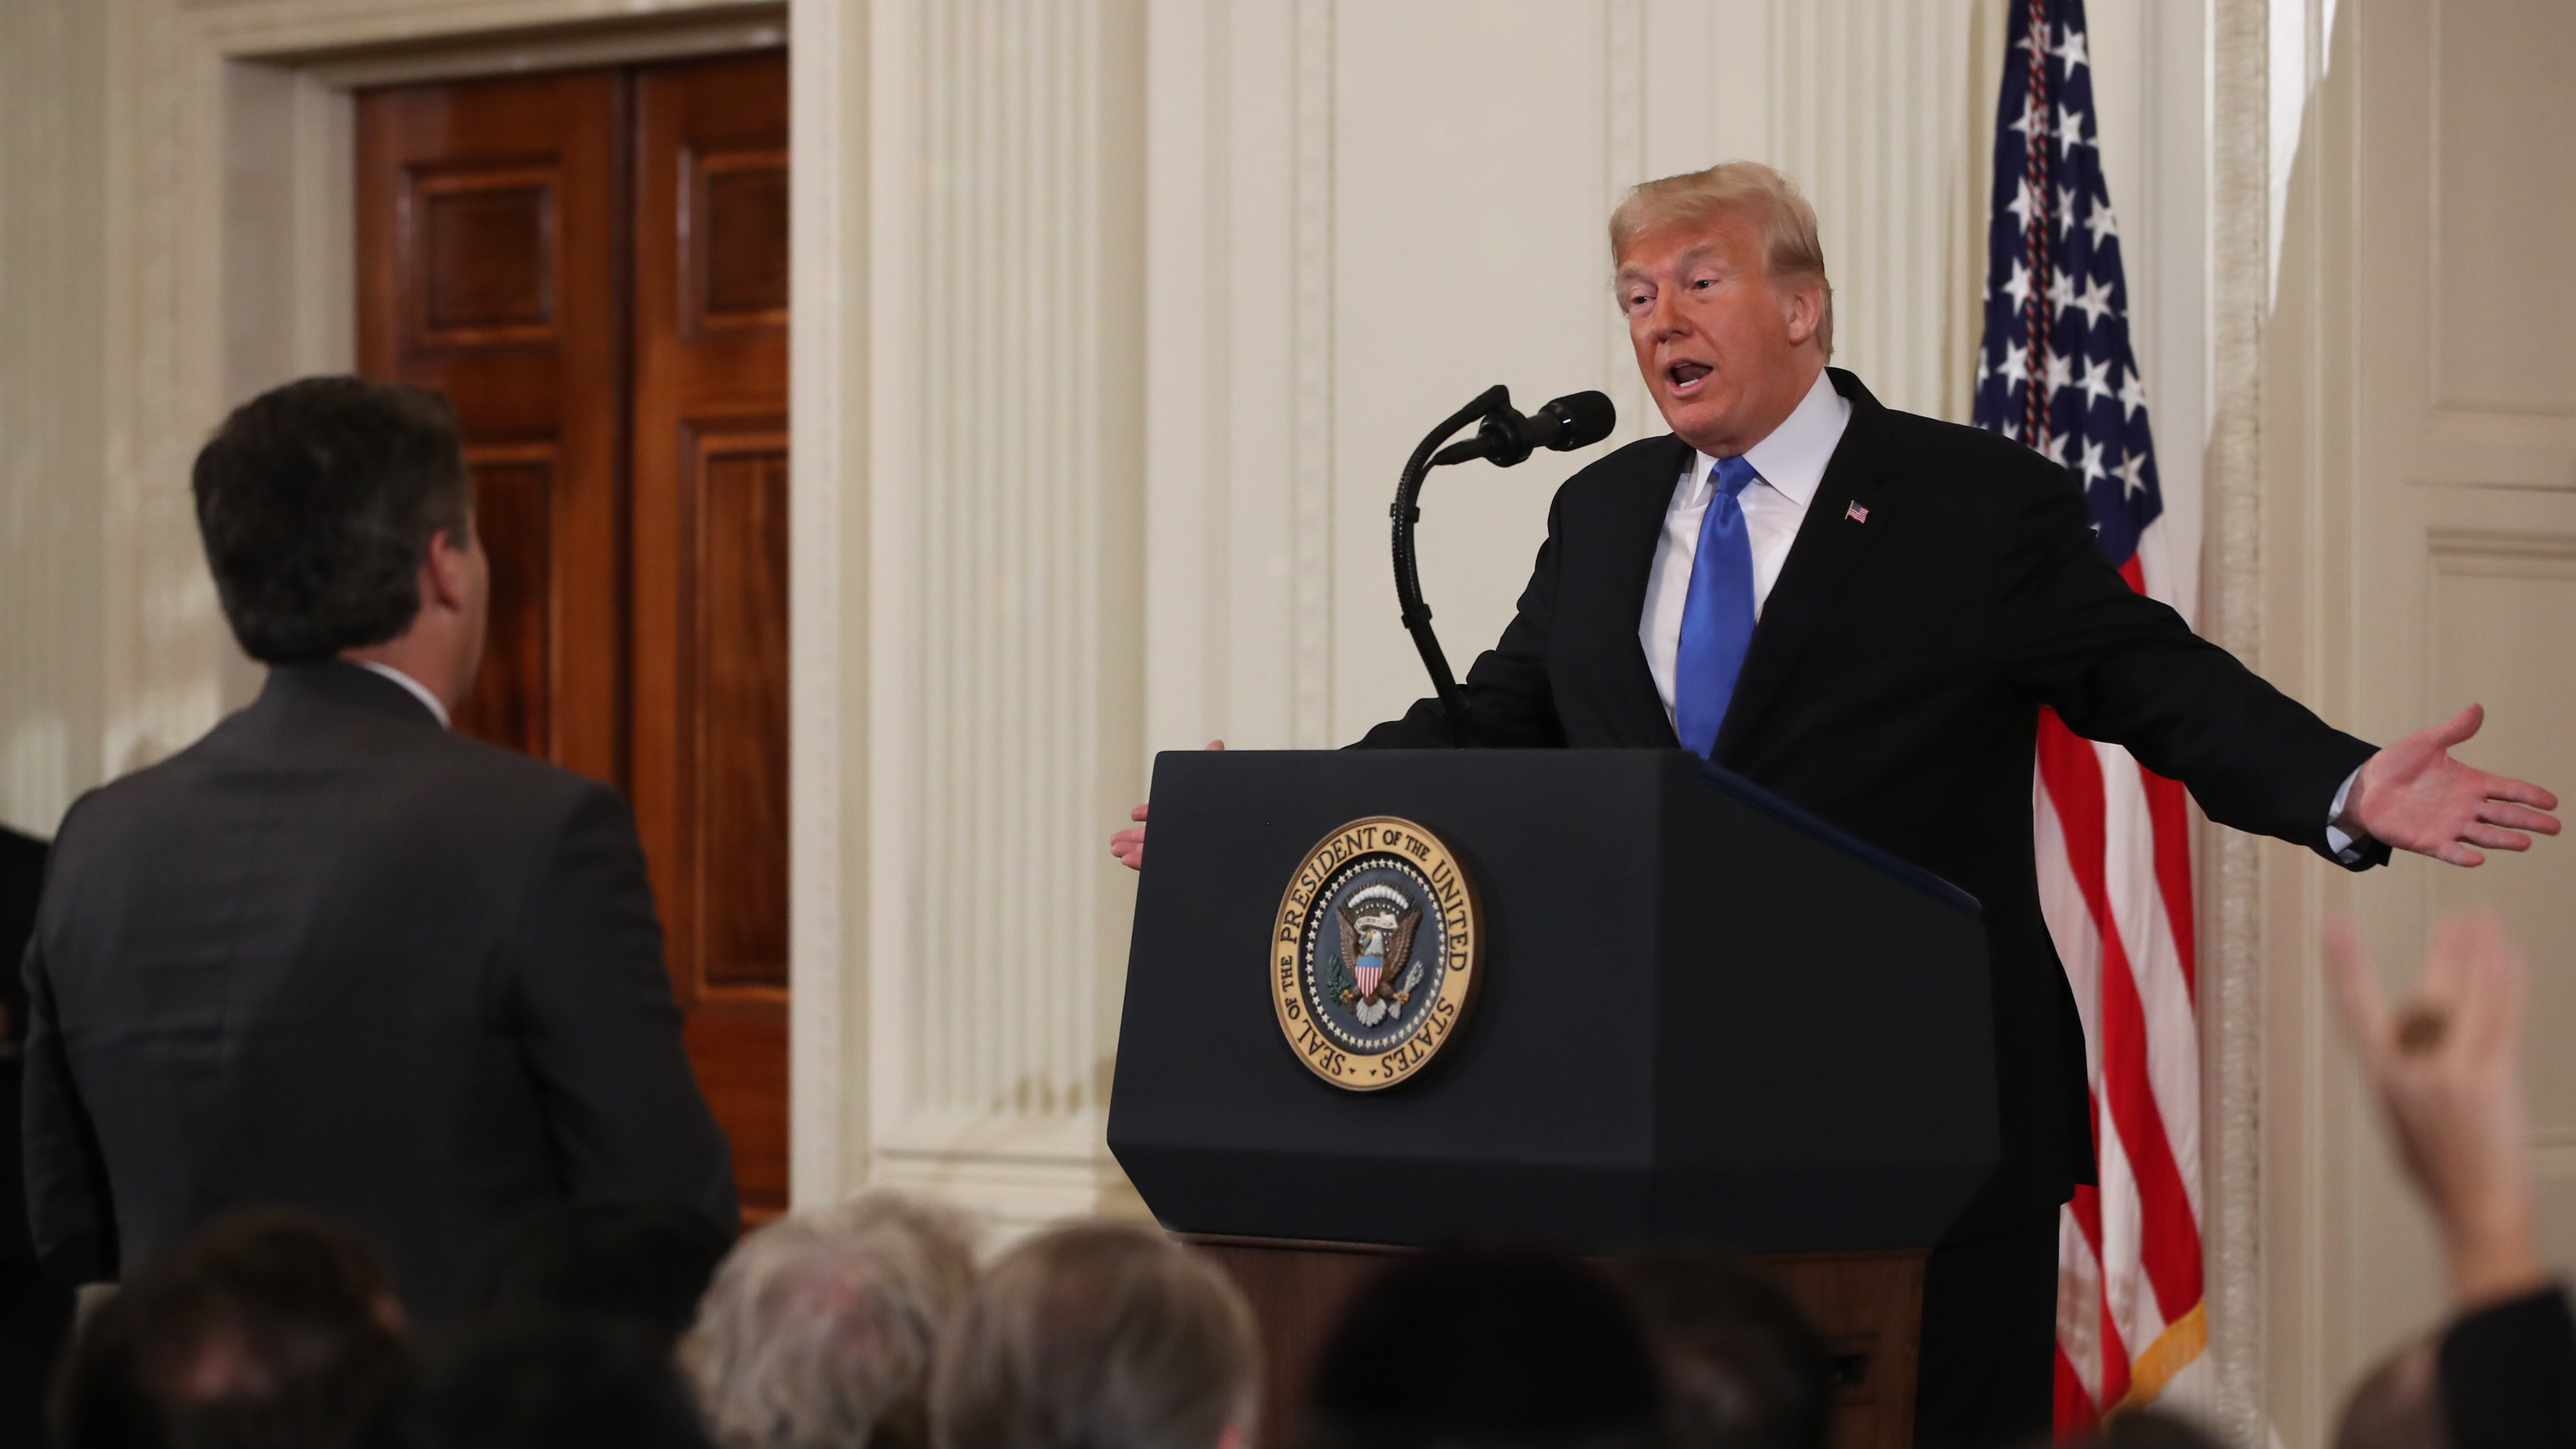 b4629c122f CNN sues Trump for barring Jim Acosta from the White House – VICE News